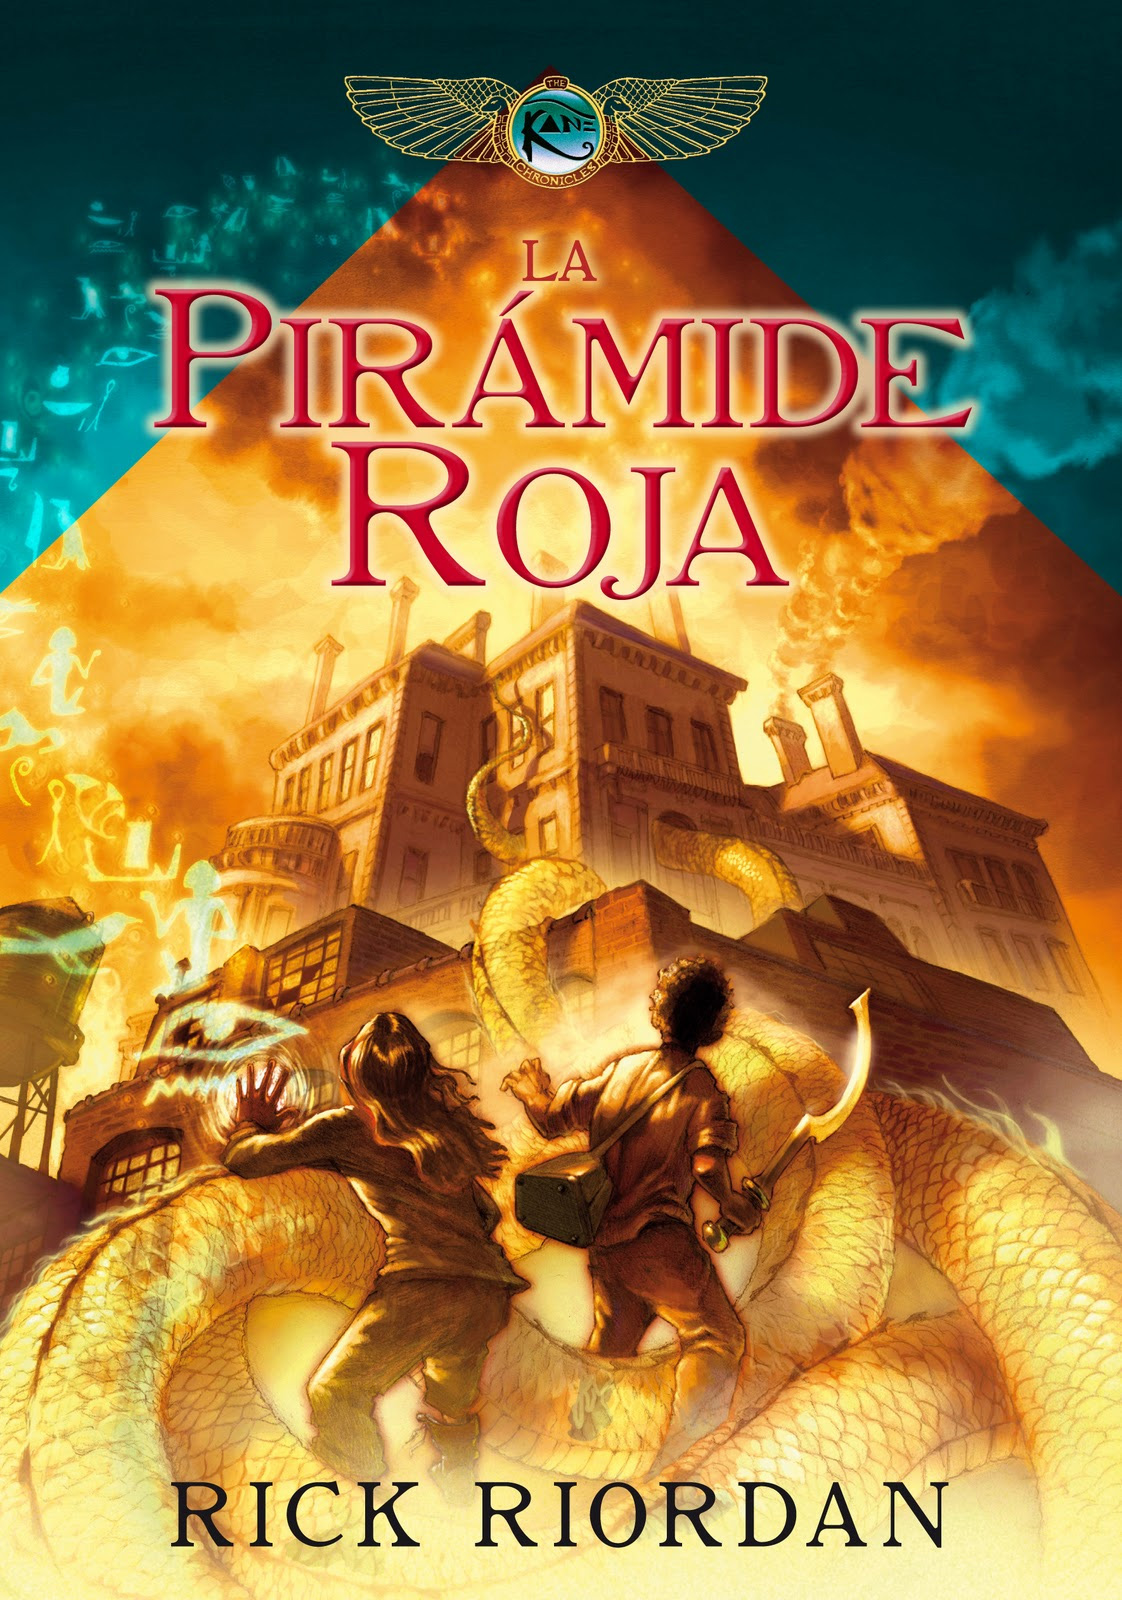 http://leoestudio.files.wordpress.com/2013/05/piramide-roja.jpg